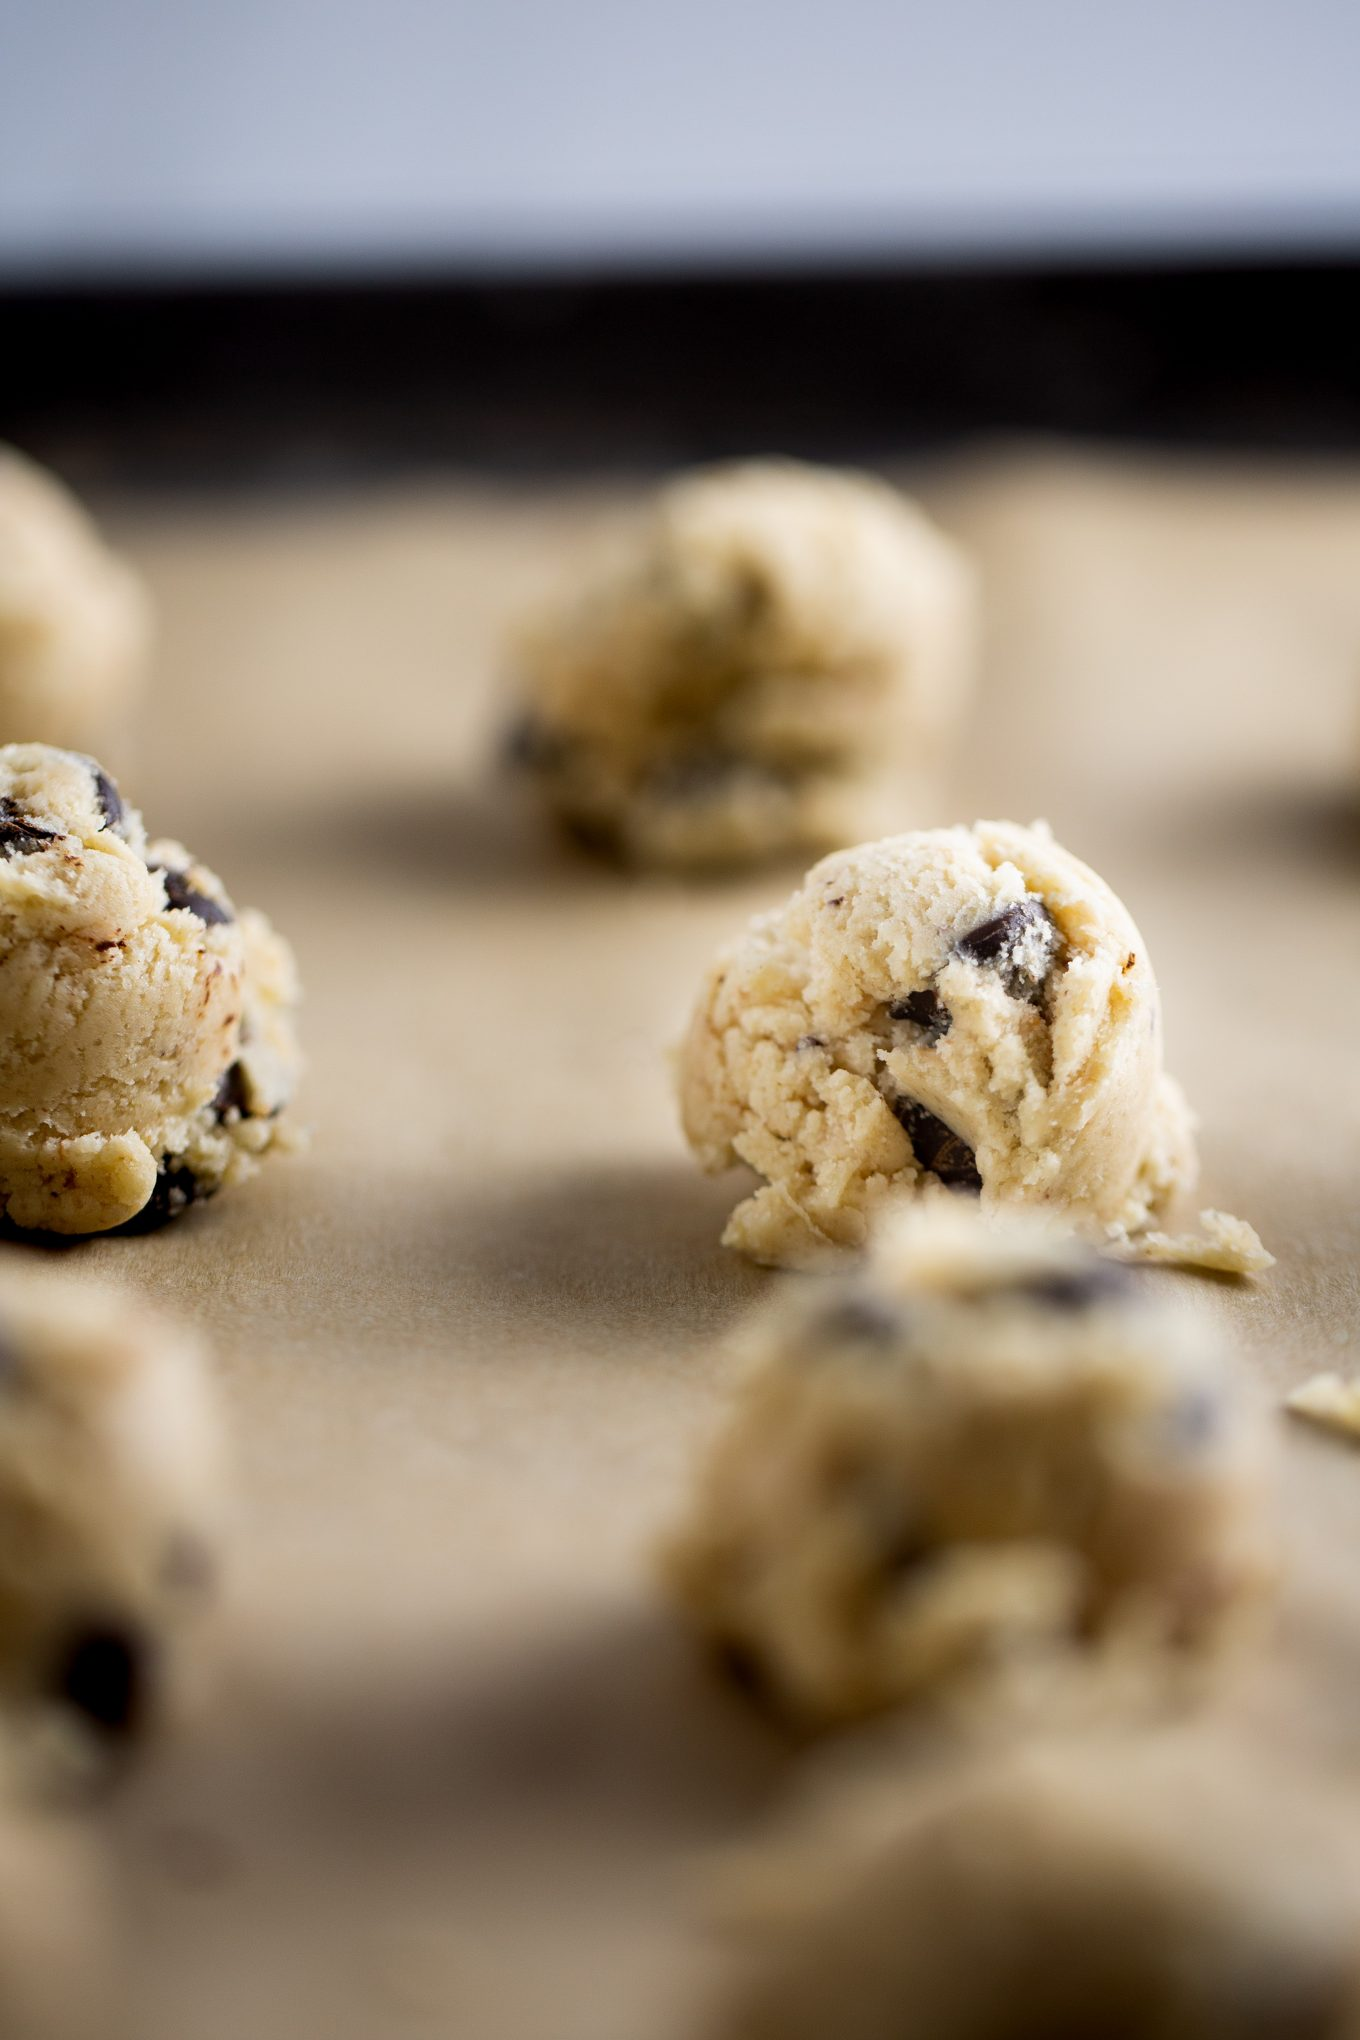 chocolate chips before going into the oven